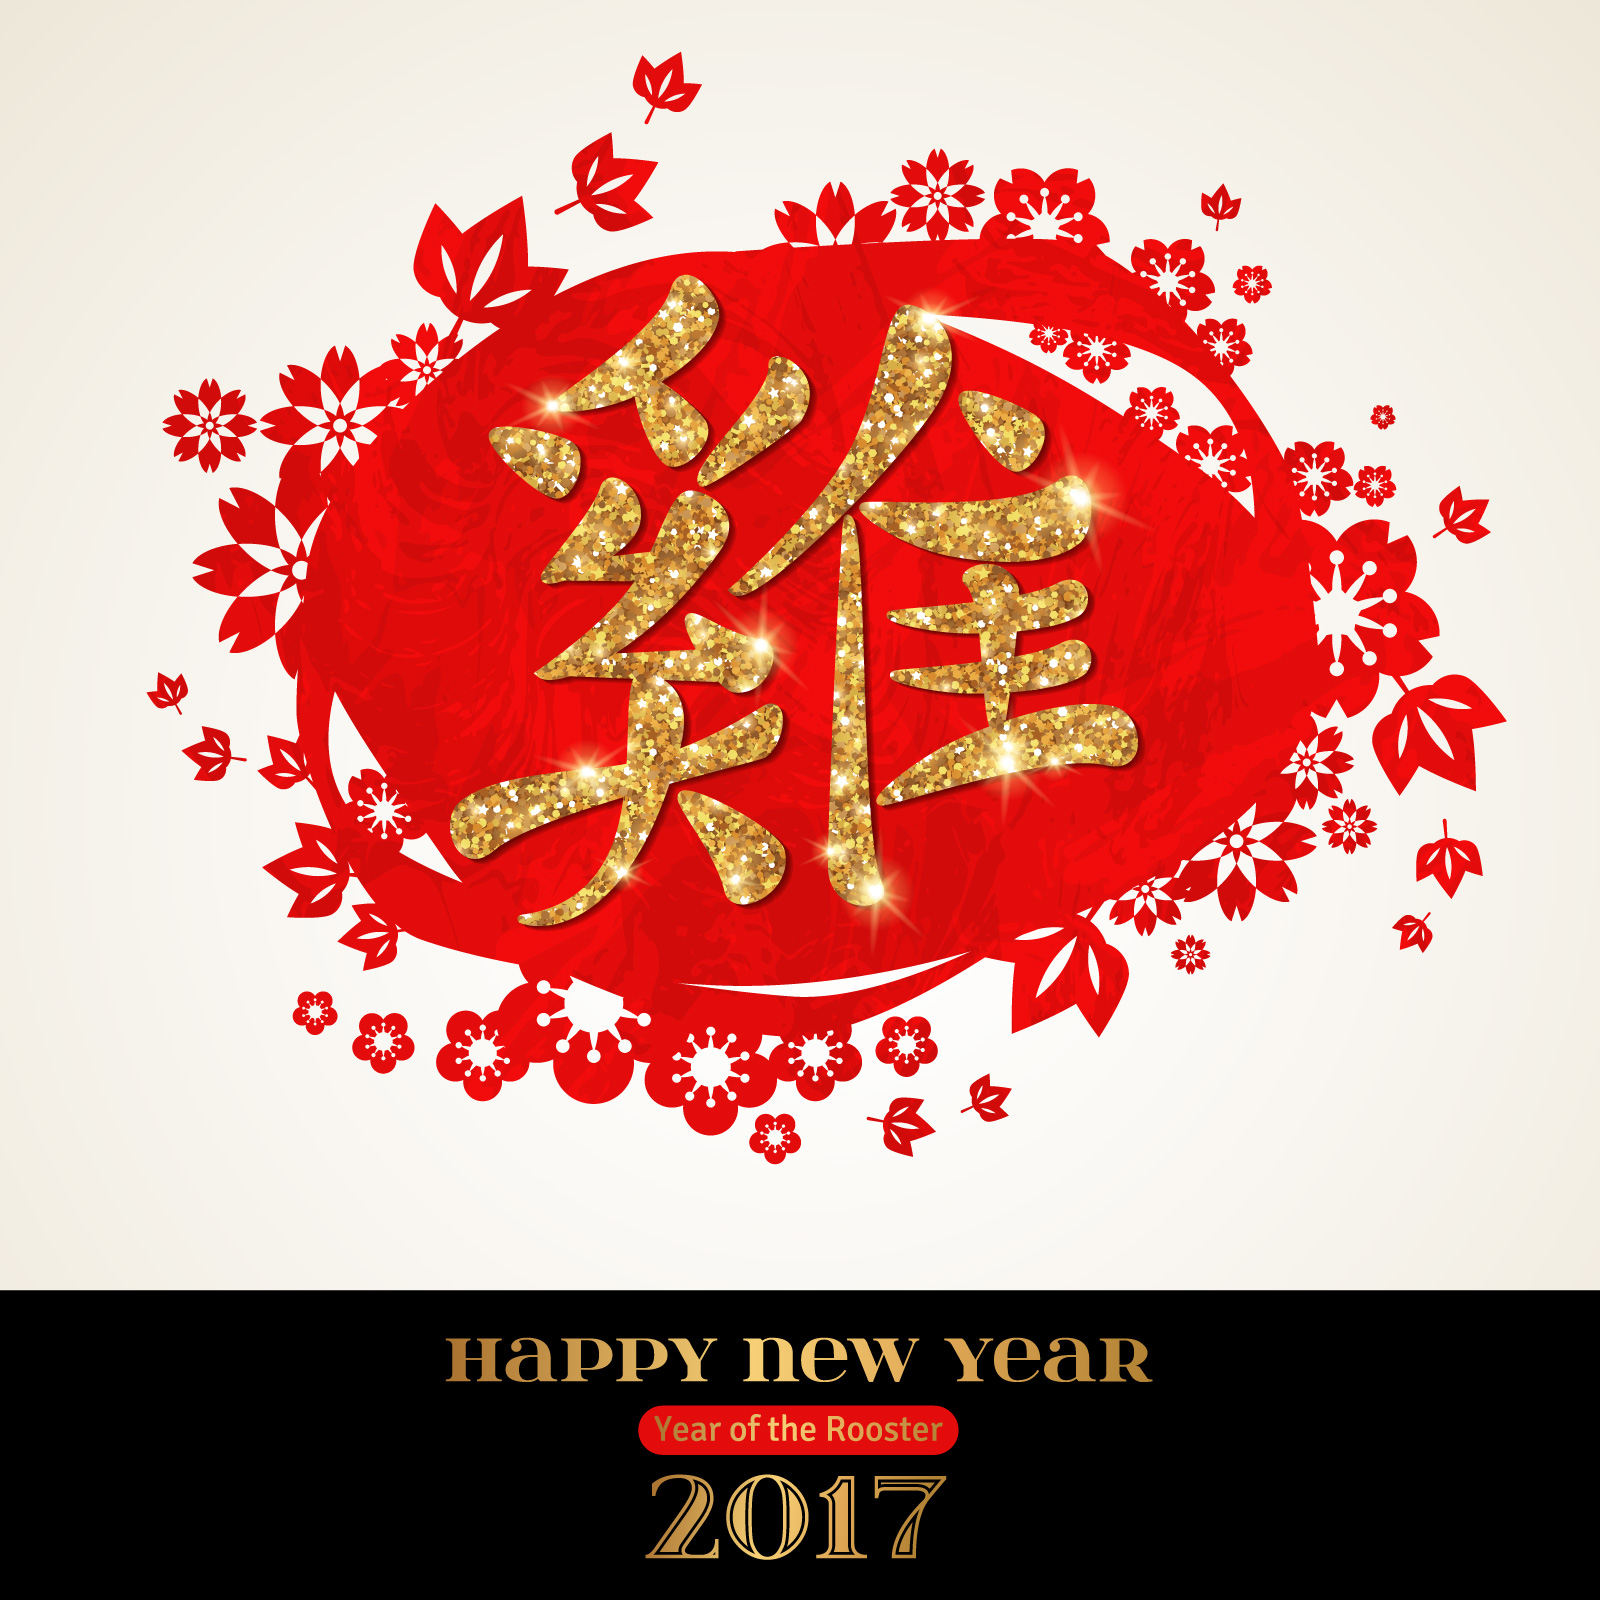 chinesefontdesign.com 2017 03 17 17 54 21 2017 chickens vector diagram in the New Year Illustrations Vectors AI ESP